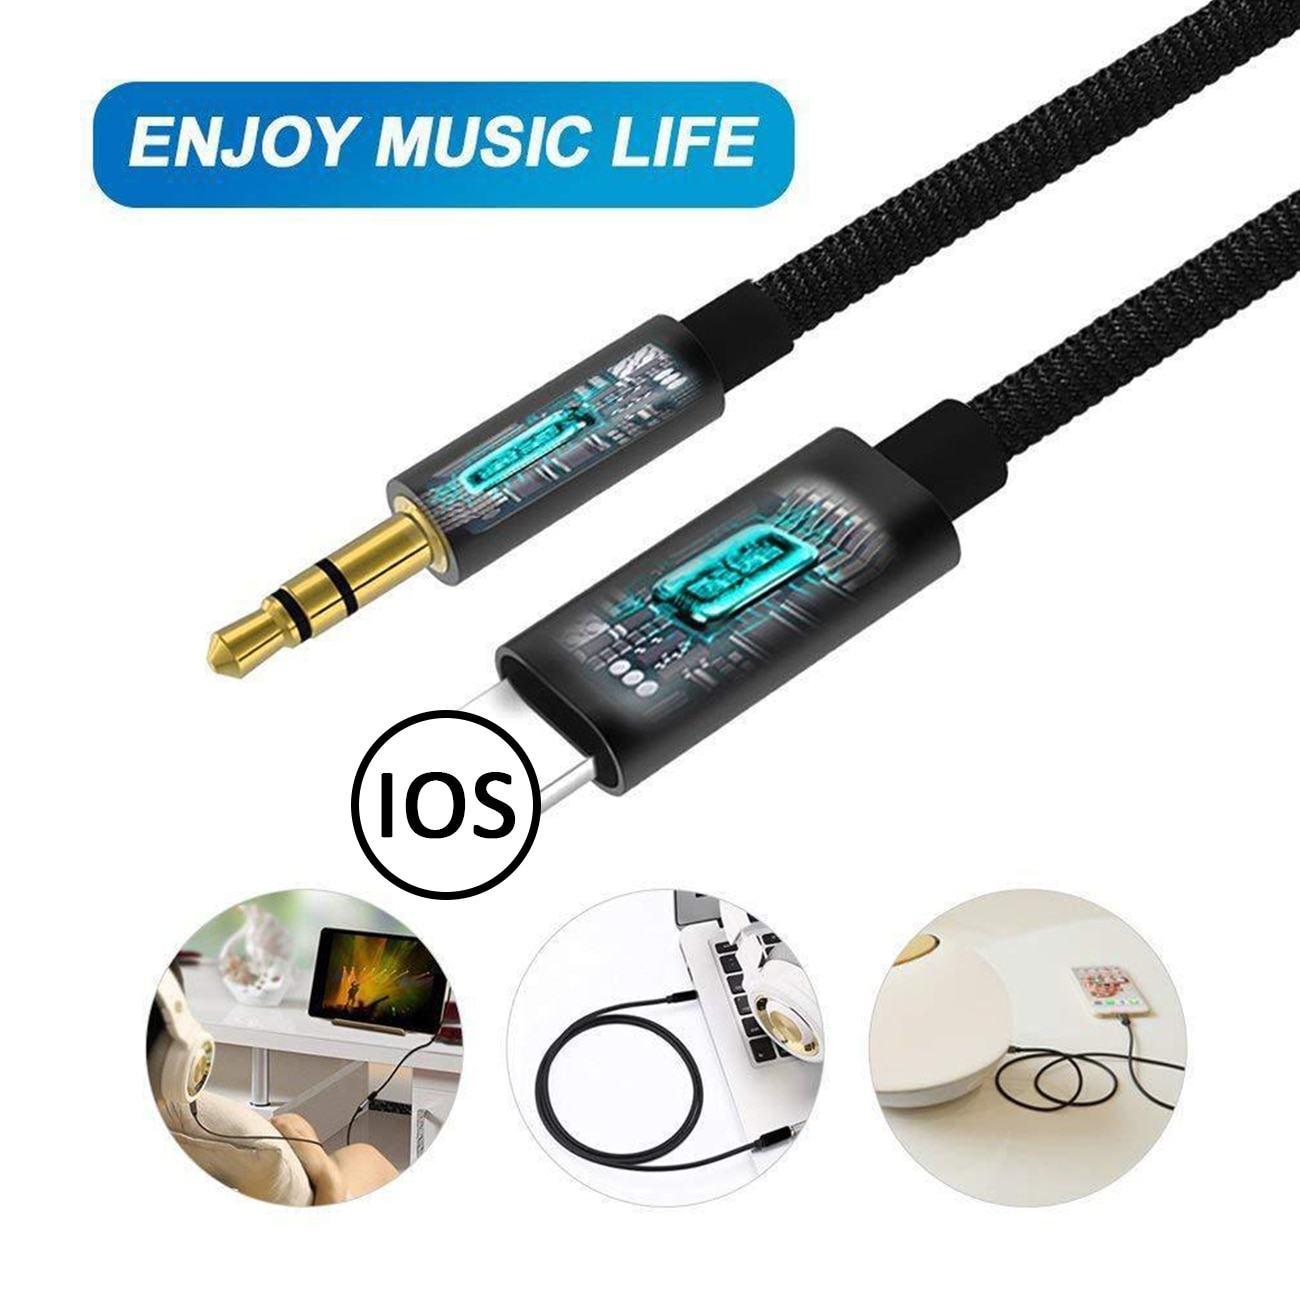 Audio Splitter Cable For Iphone 12 11 Pro XR 8 Pin To 3.5 mm Jack Aux Cable Car Speaker Headphone Adapter for Iphone ipad Tablet